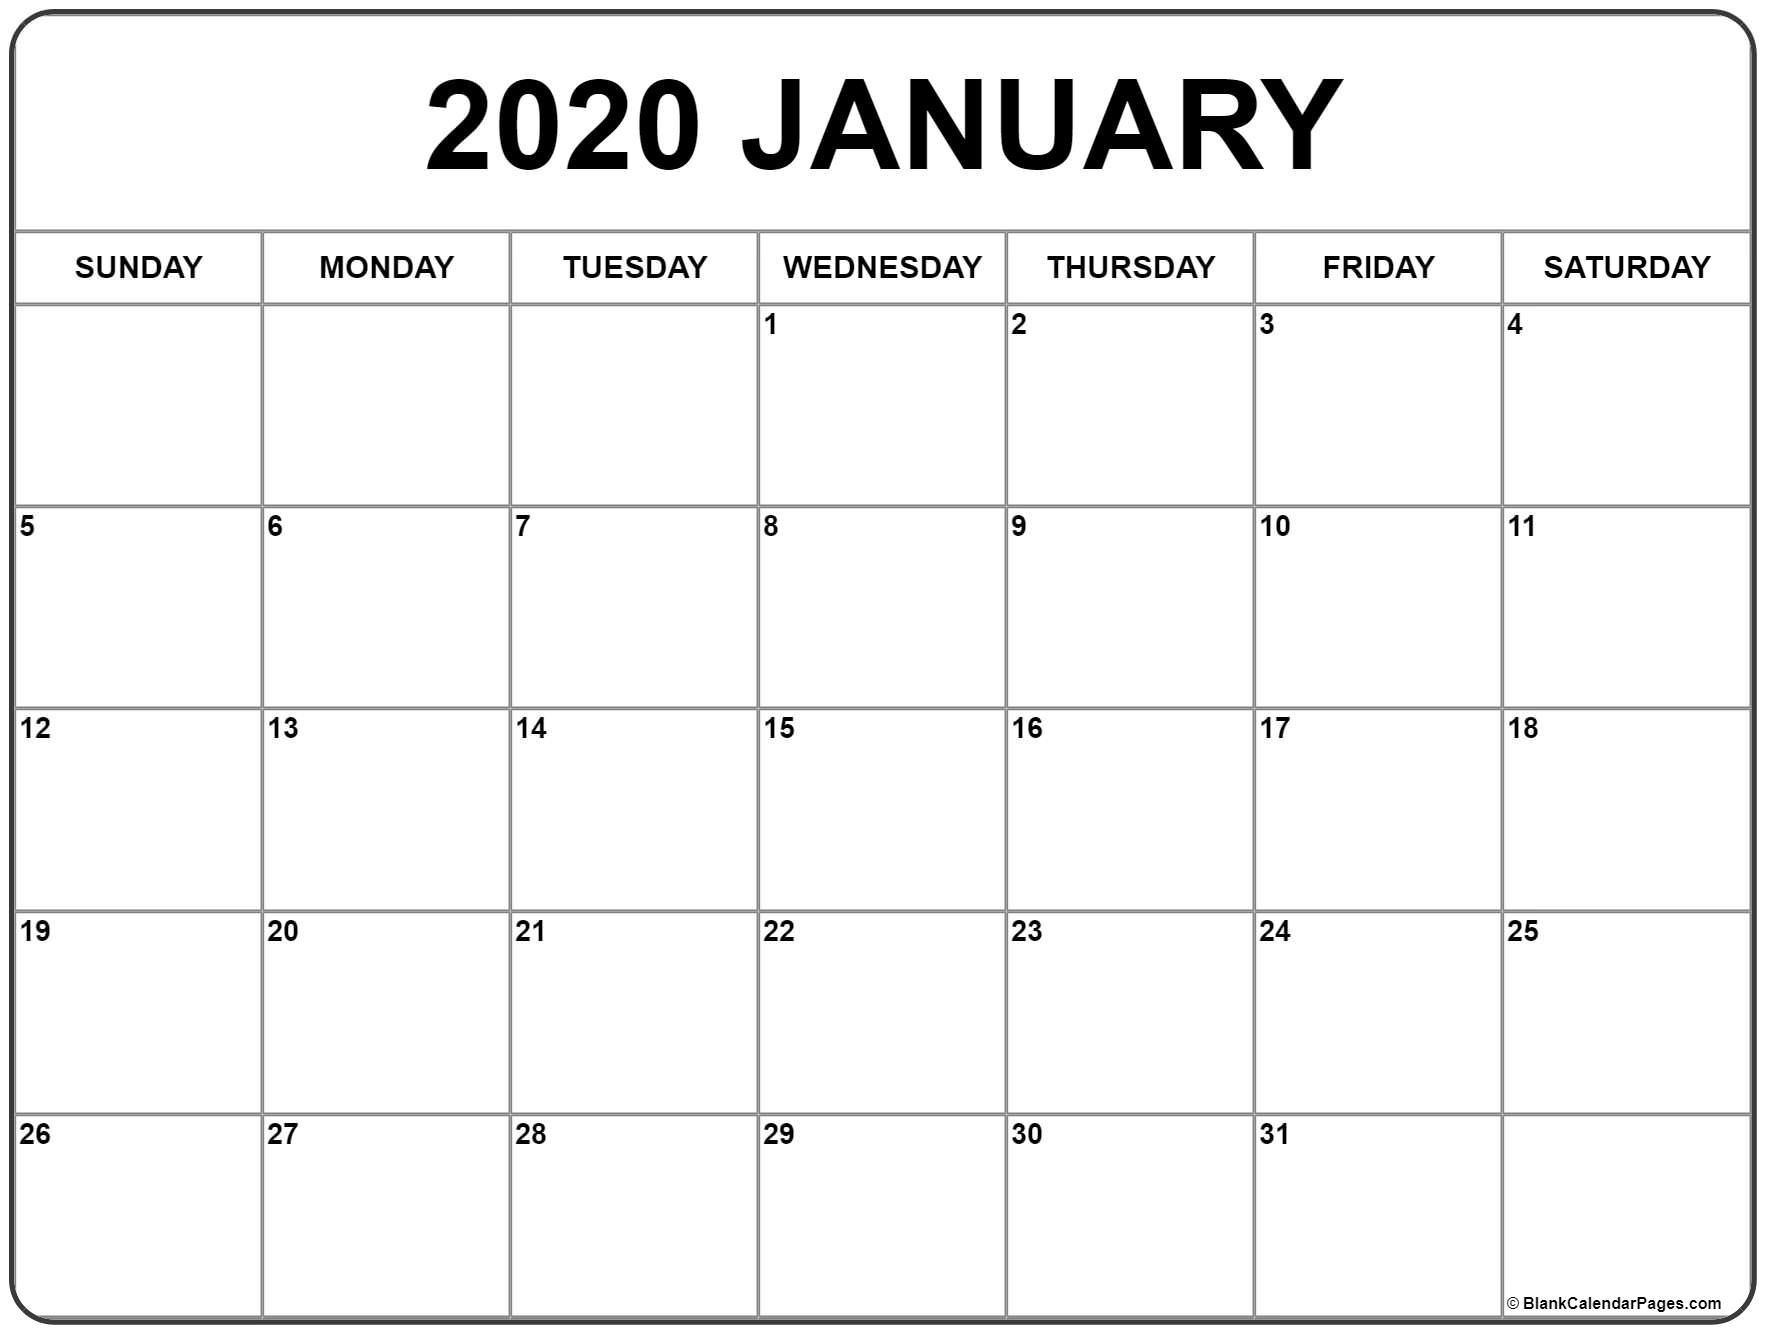 January 2020 Calendar | Free Printable Monthly Calendars  Printable 2020 Full Page Monthly Calendar